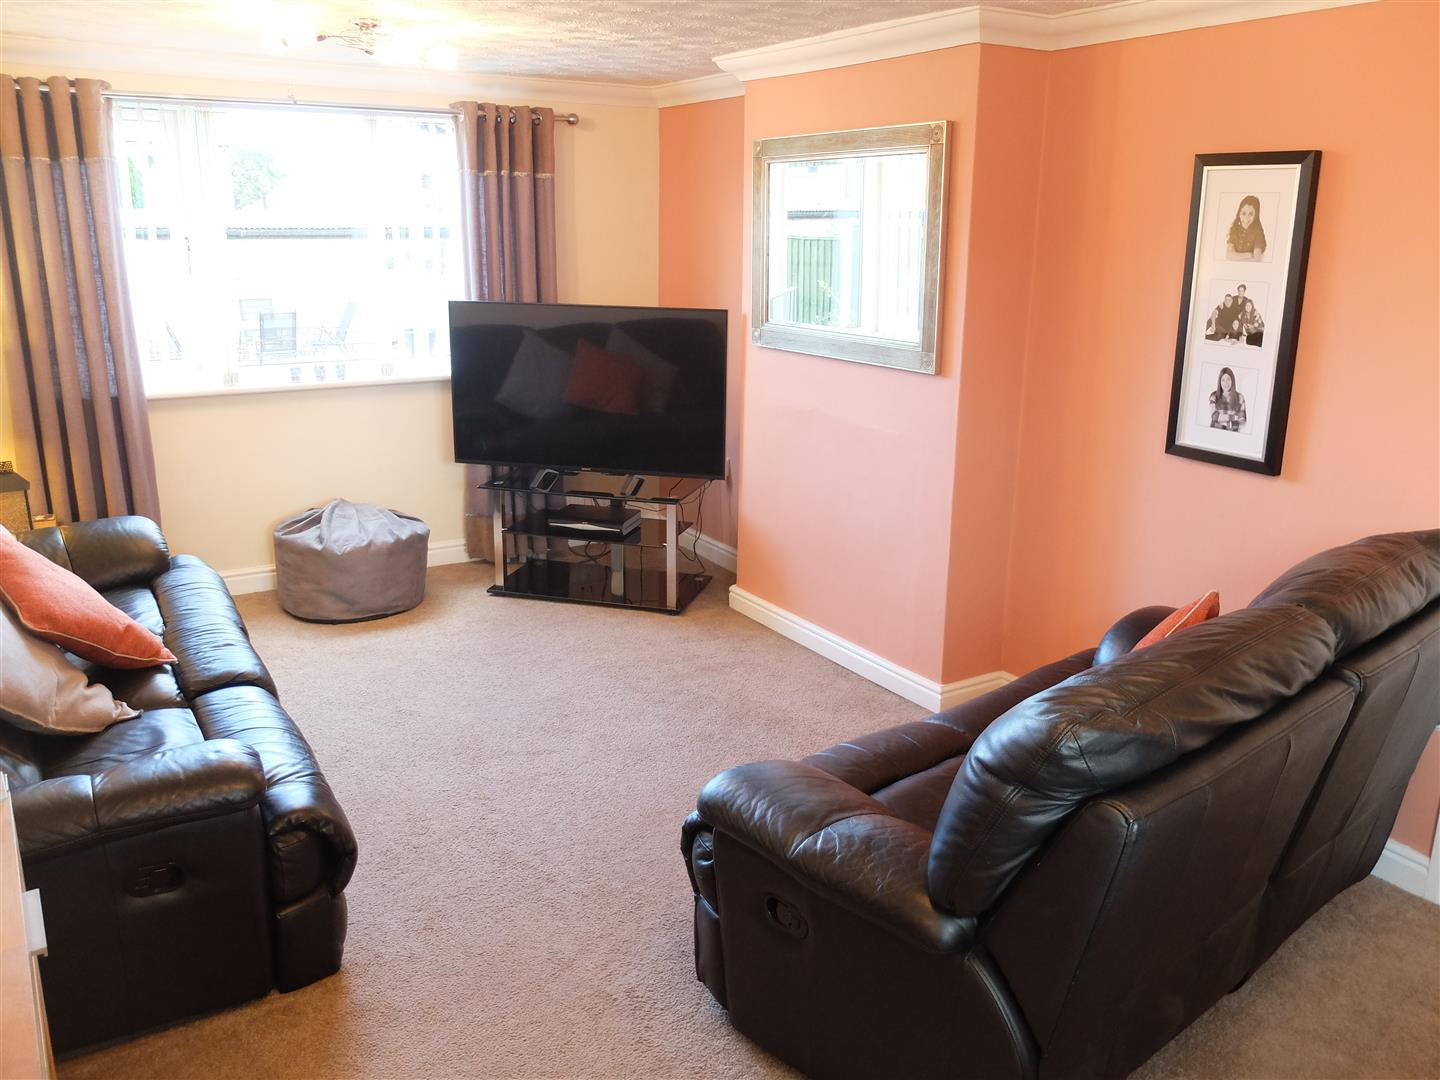 3 Bedrooms House - End Terrace For Sale 25 Lowther Browns Lonning Carlisle